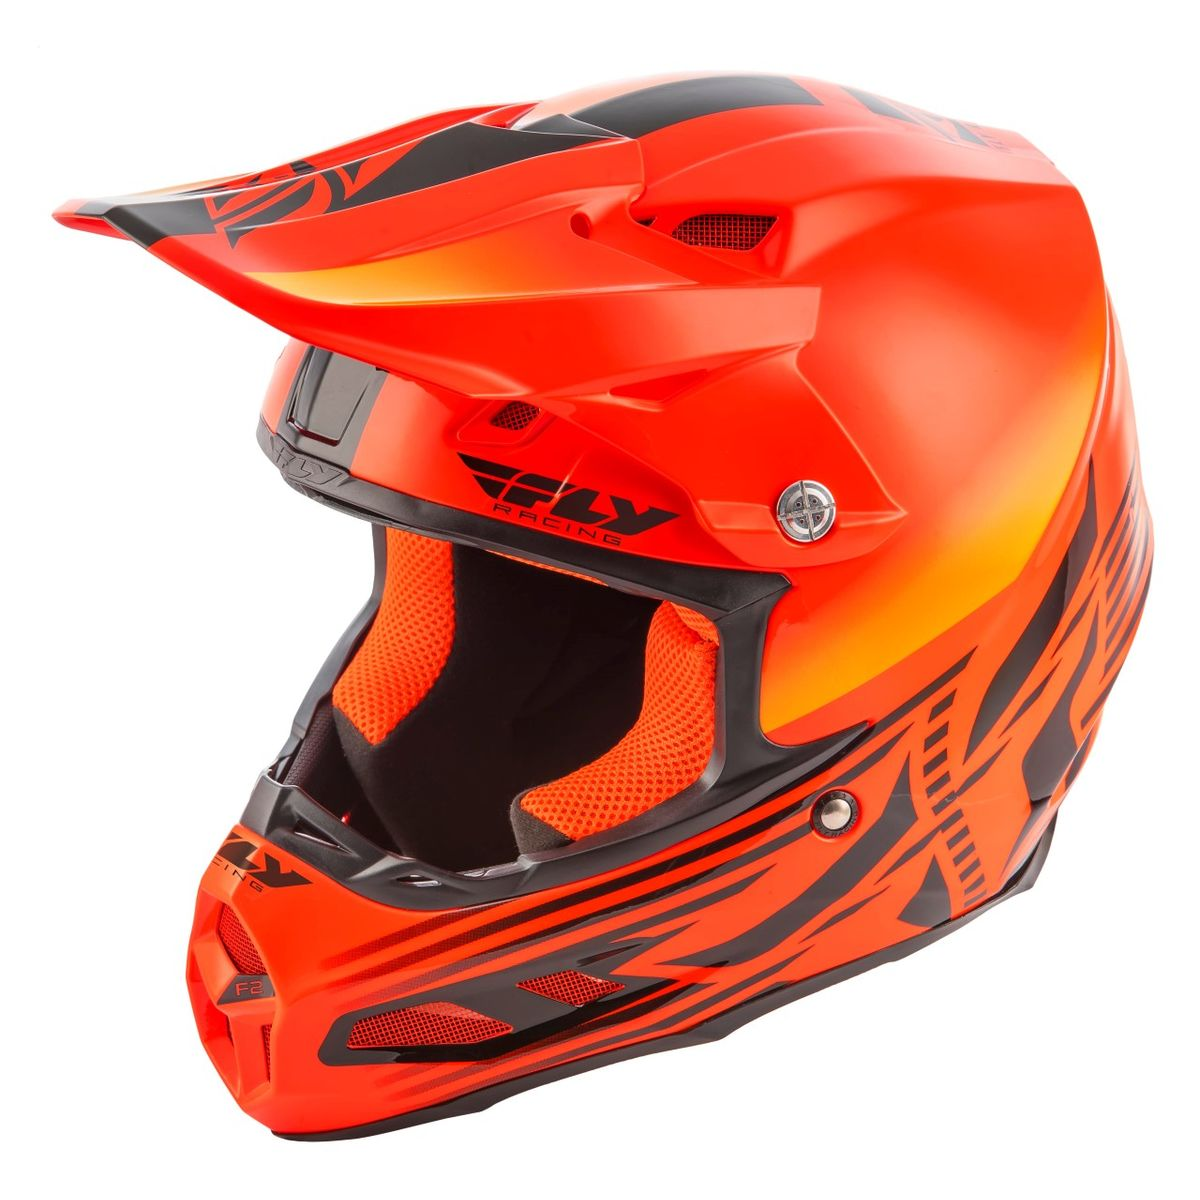 Fly Racing F2 CARBON MIPS Shield White//Red Offroad Motorcycle Helmet